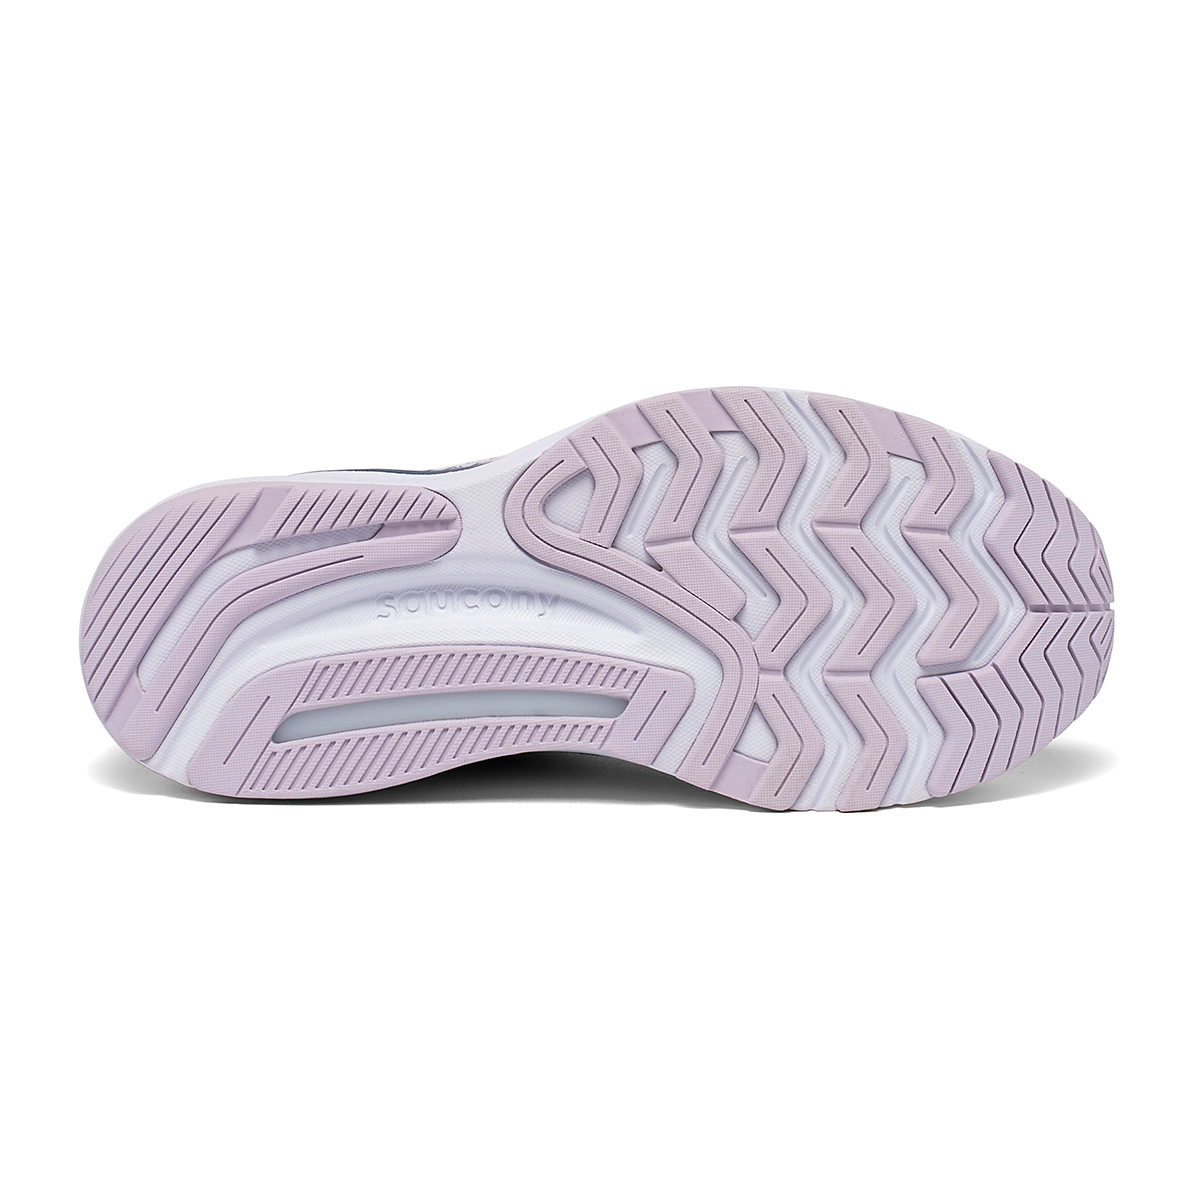 Women's Saucony Guide 14 Running Shoe - Color: Lilac/Storm - Size: 5 - Width: Regular, Lilac/Storm, large, image 5